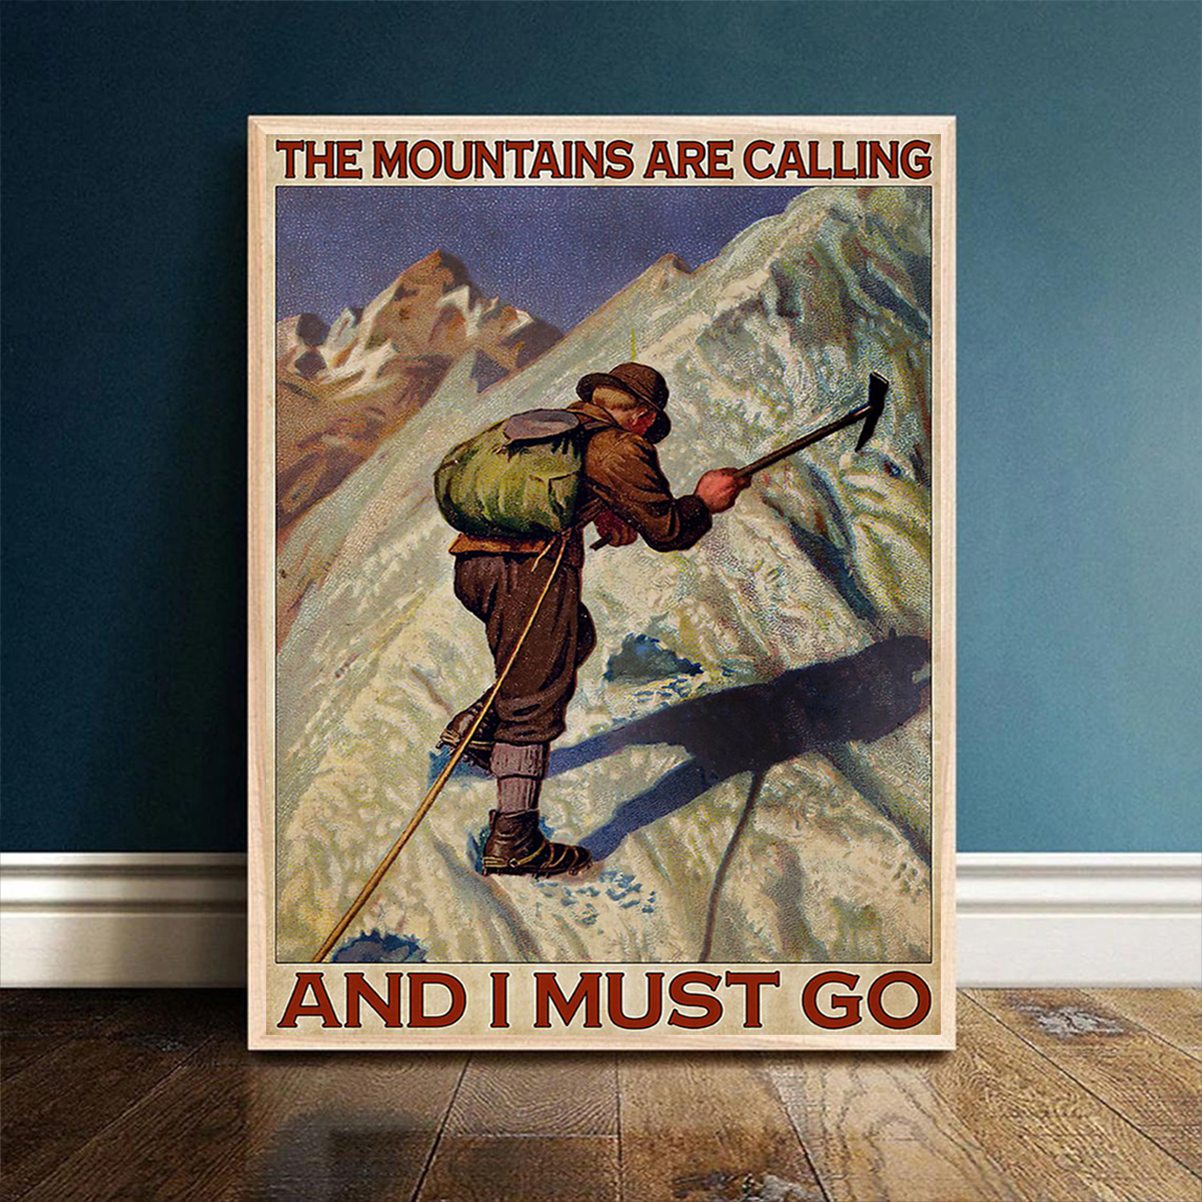 The moutains are calling and I must go poster A1